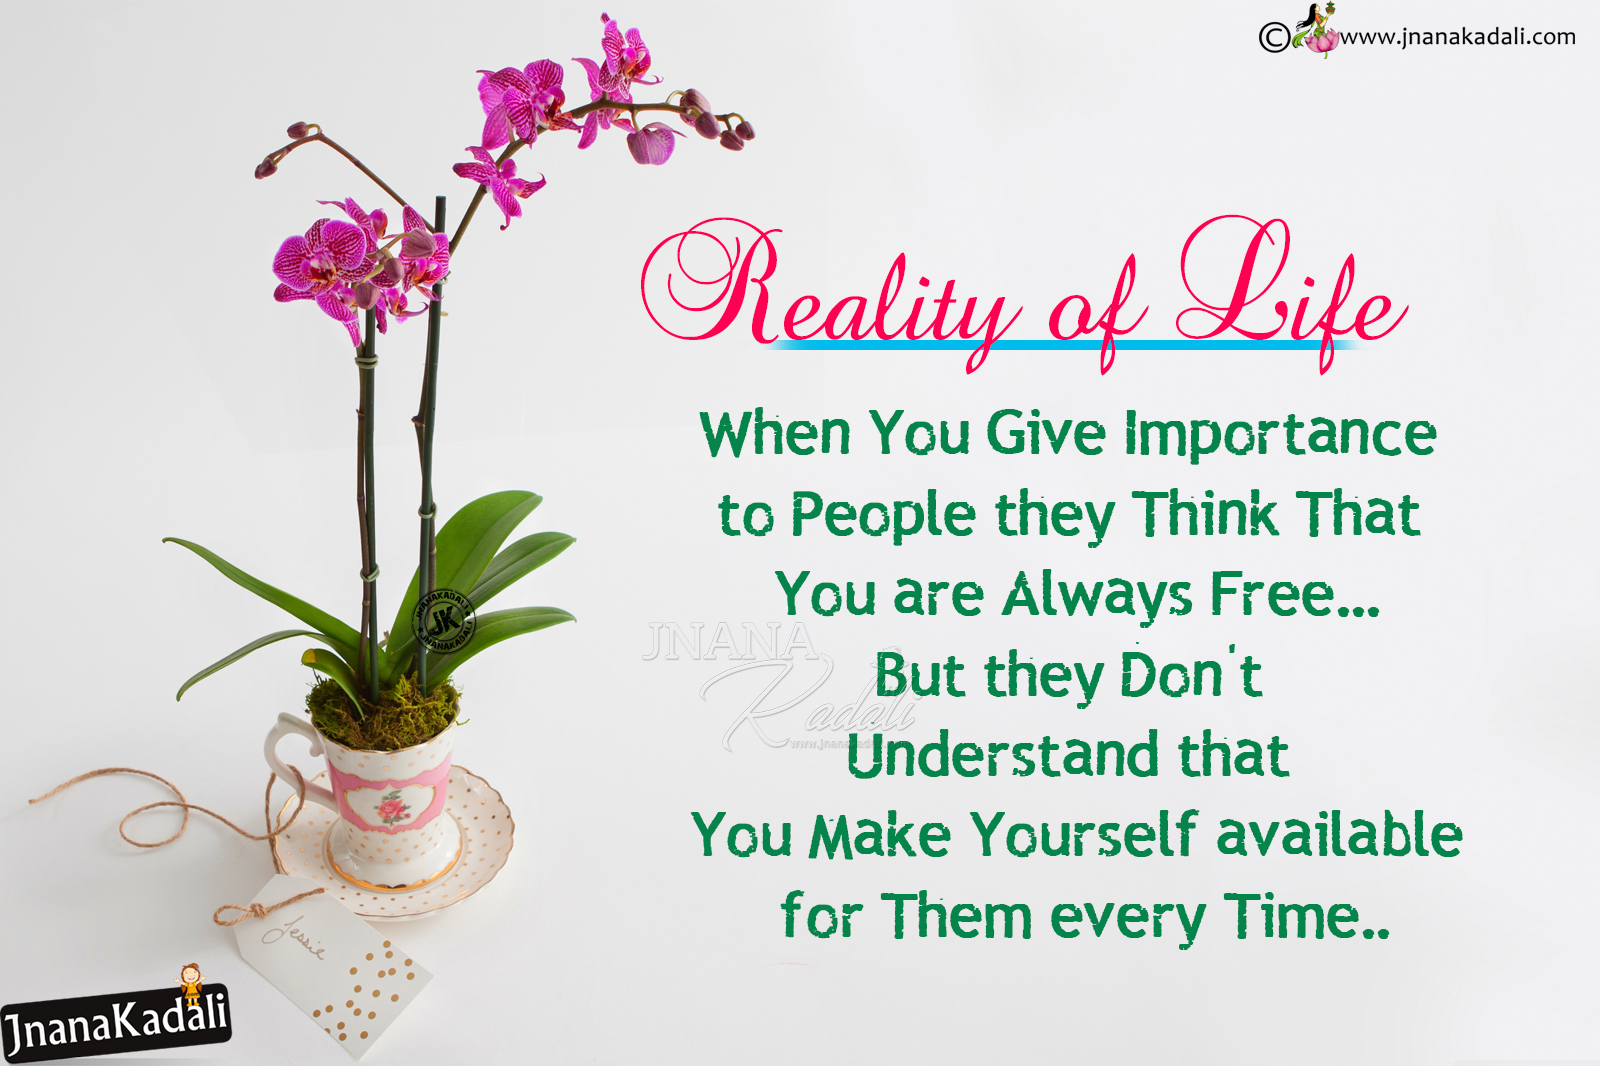 Reality Of Life Quotes With Hd Wallpapers In English Jnana Kadali Com Telugu Quotes English Quotes Hindi Quotes Tamil Quotes Dharmasandehalu